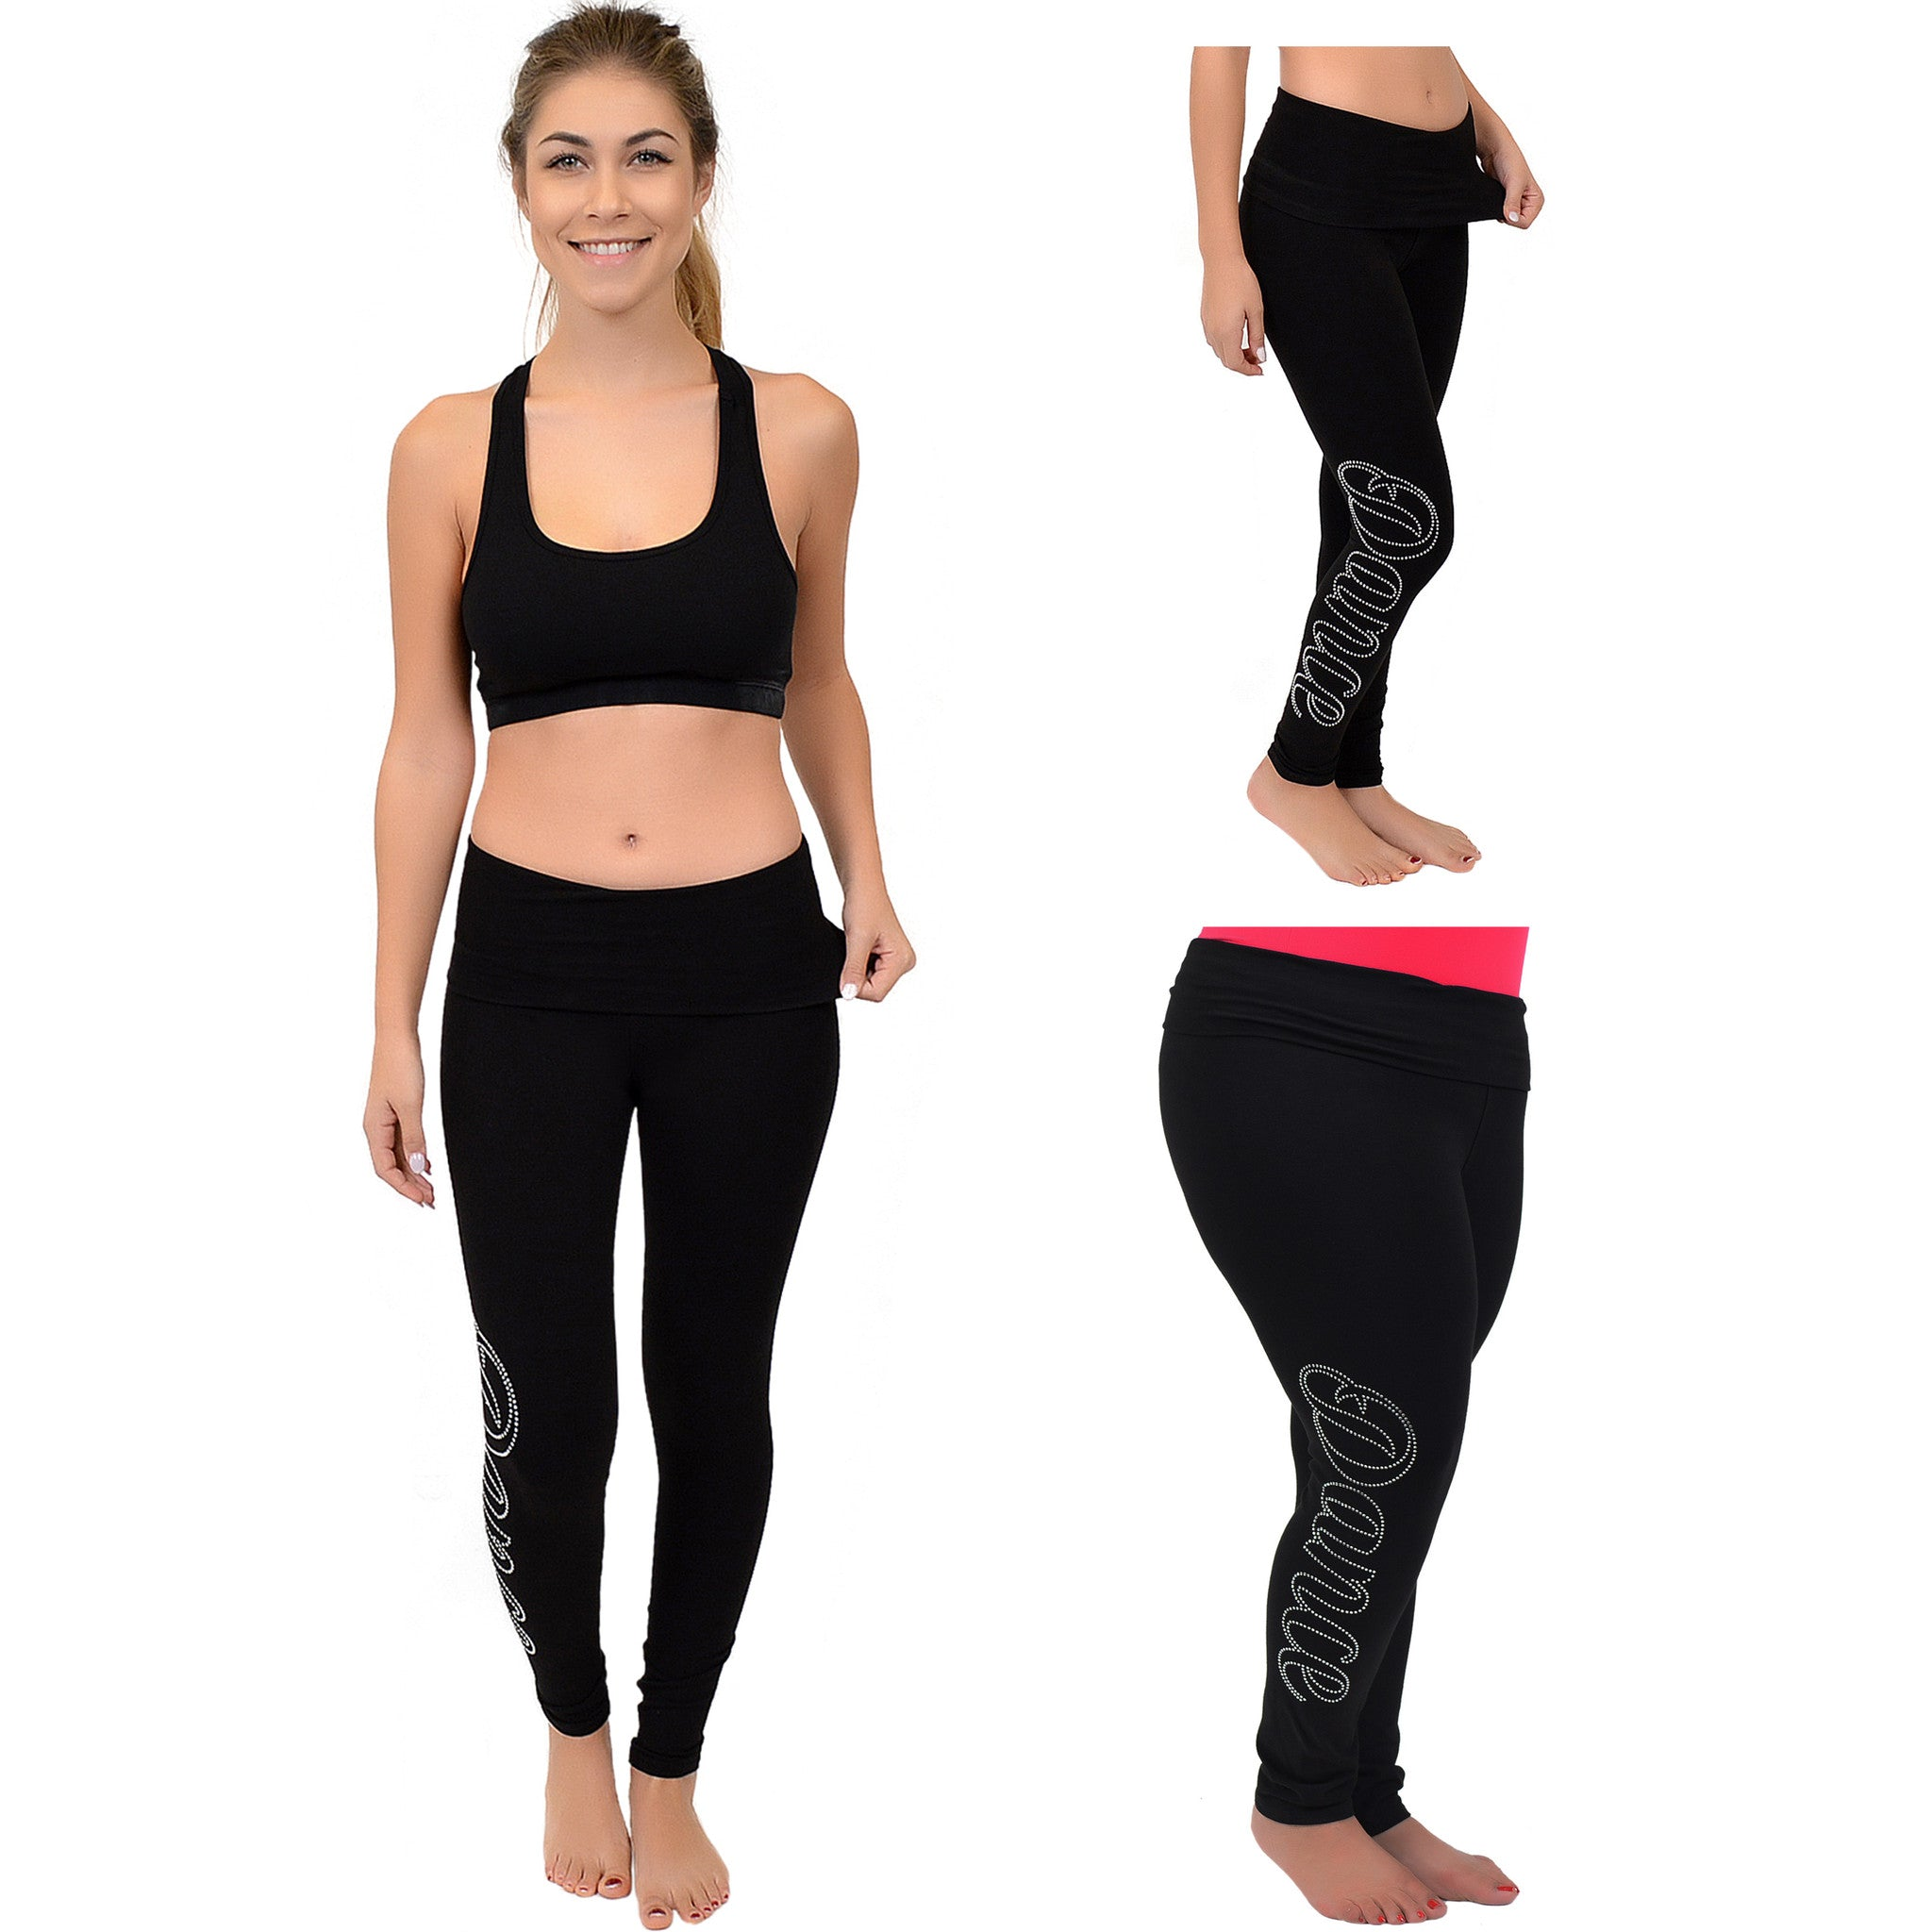 Teamwear Dance Rhinestone Foldover Leggings